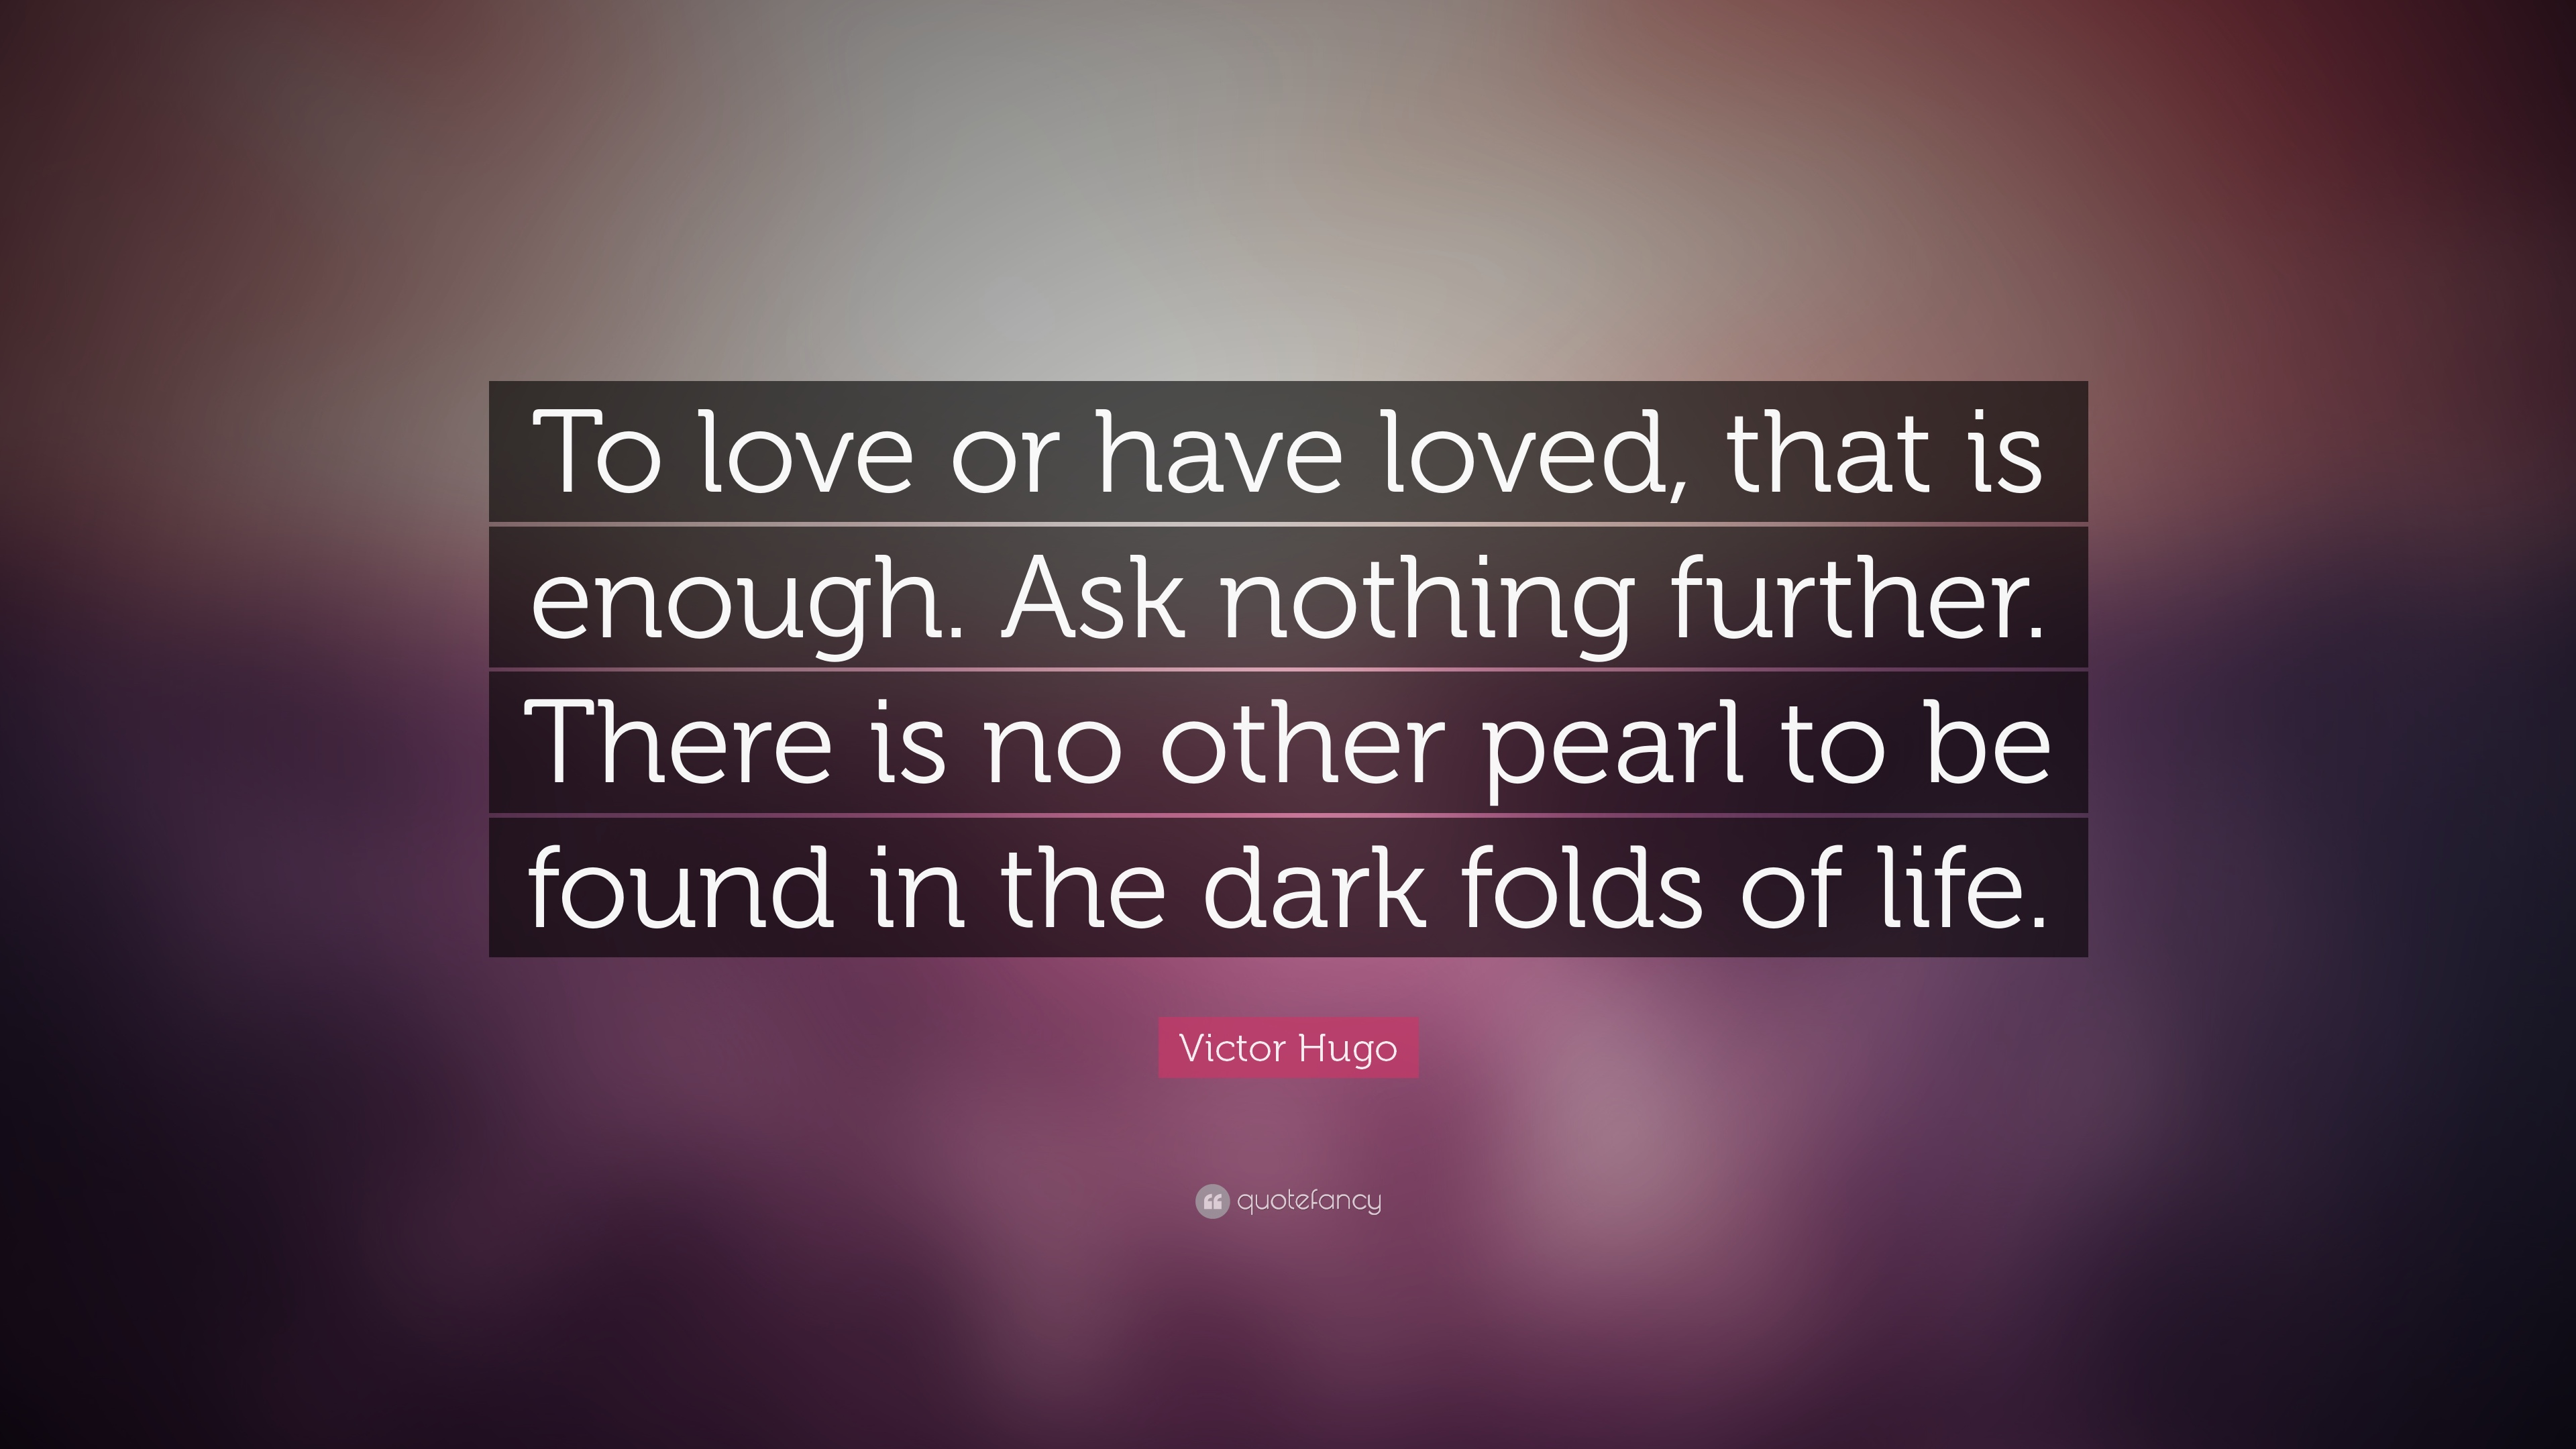 victor hugo quote to love or have loved that is enough. Black Bedroom Furniture Sets. Home Design Ideas